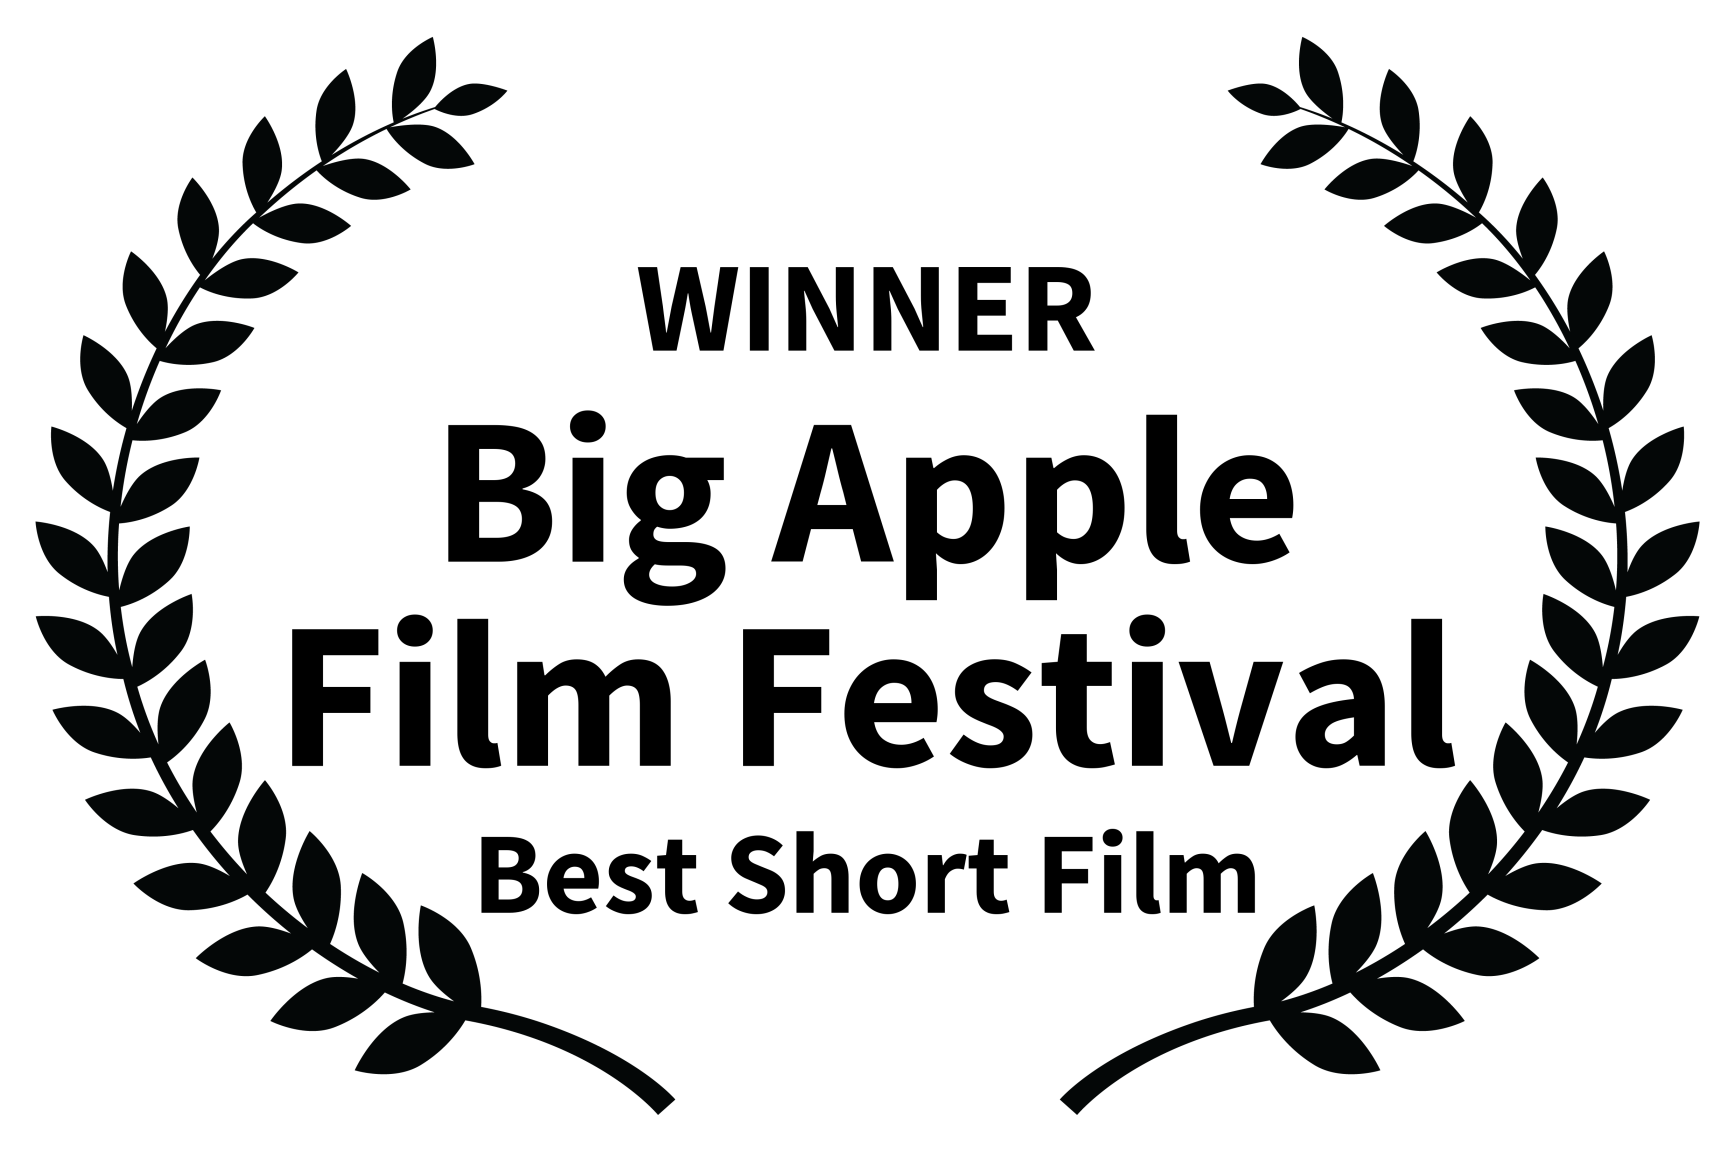 https://tinathemovie.com/wp-content/uploads/2019/05/WINNER-Big-Apple-Film-Festival-Best-Short-Film.png